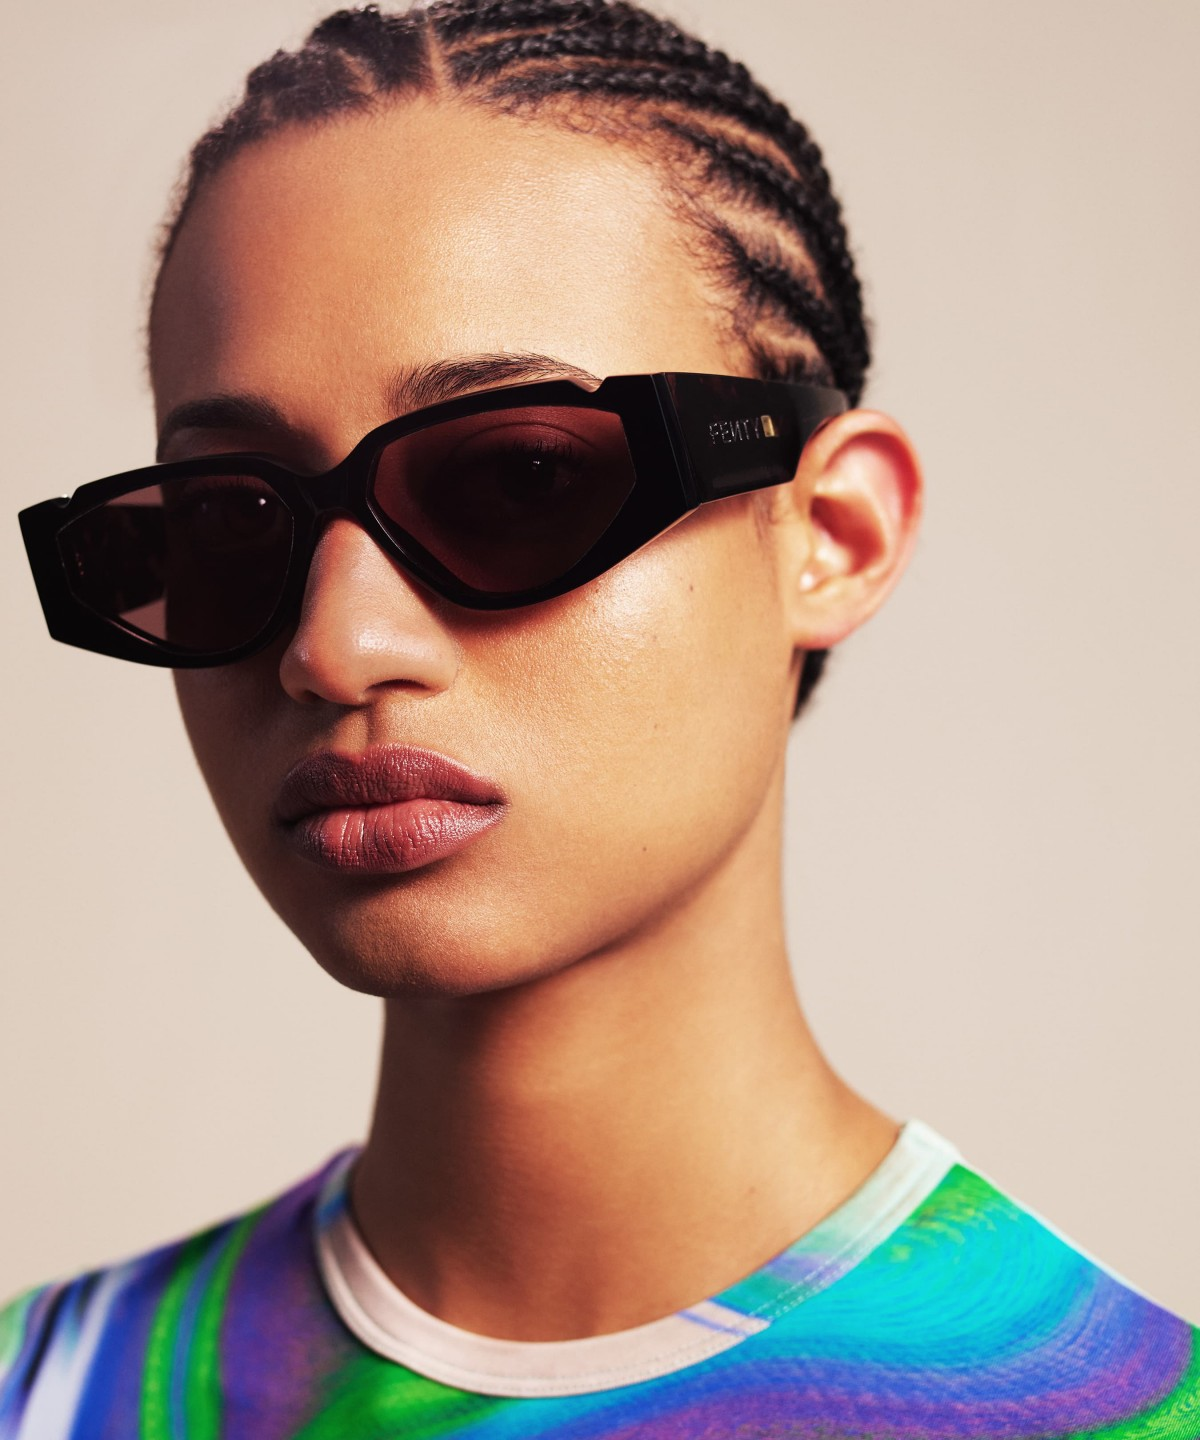 OFF RECORD SUNGLASSES by USD, available on fenty.com for $330 Rihanna Hat Exact Product